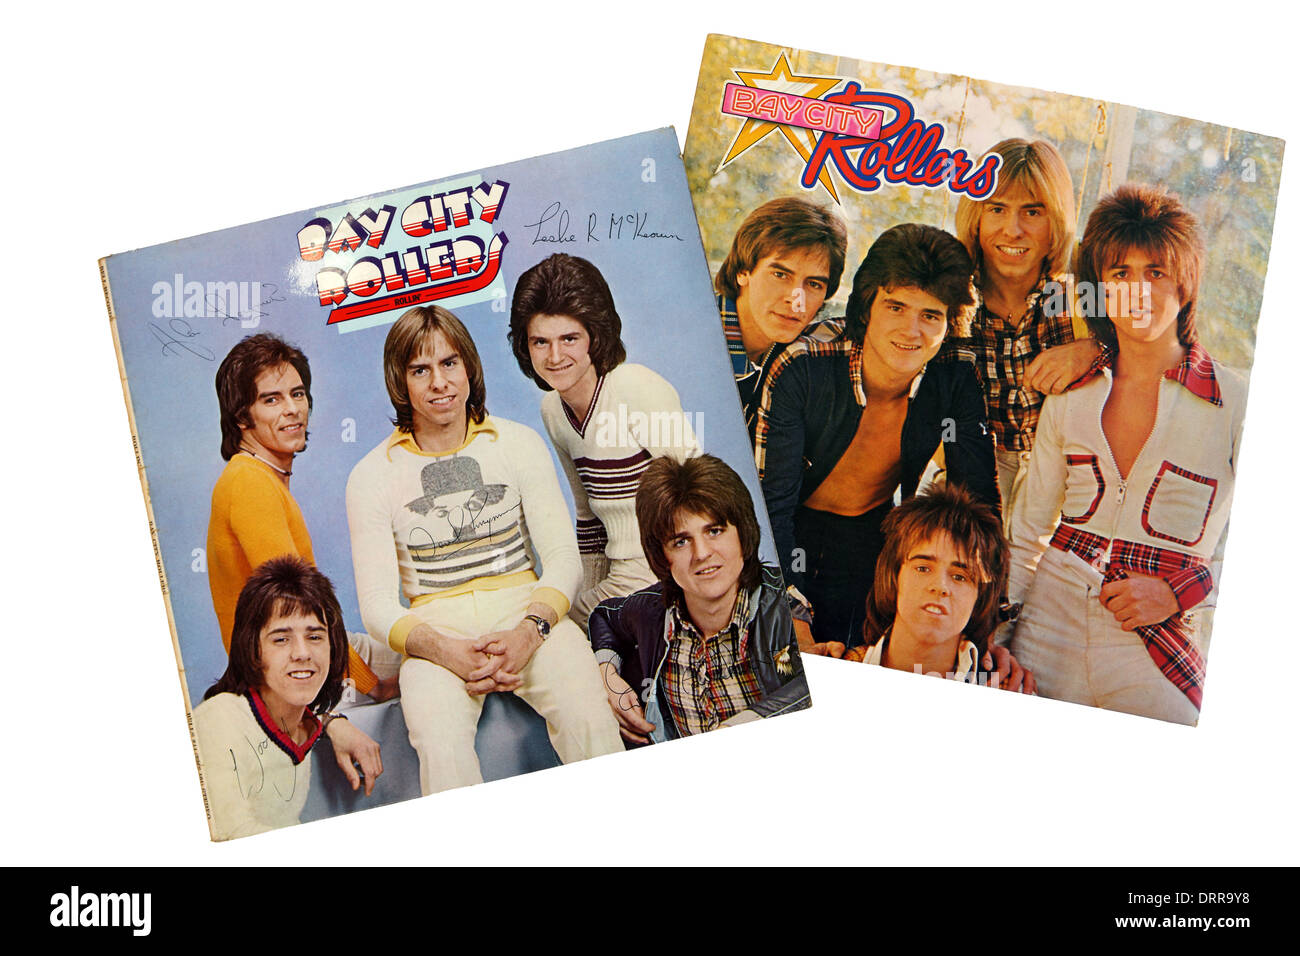 Bay City Rollers LP's on a white background - Stock Image